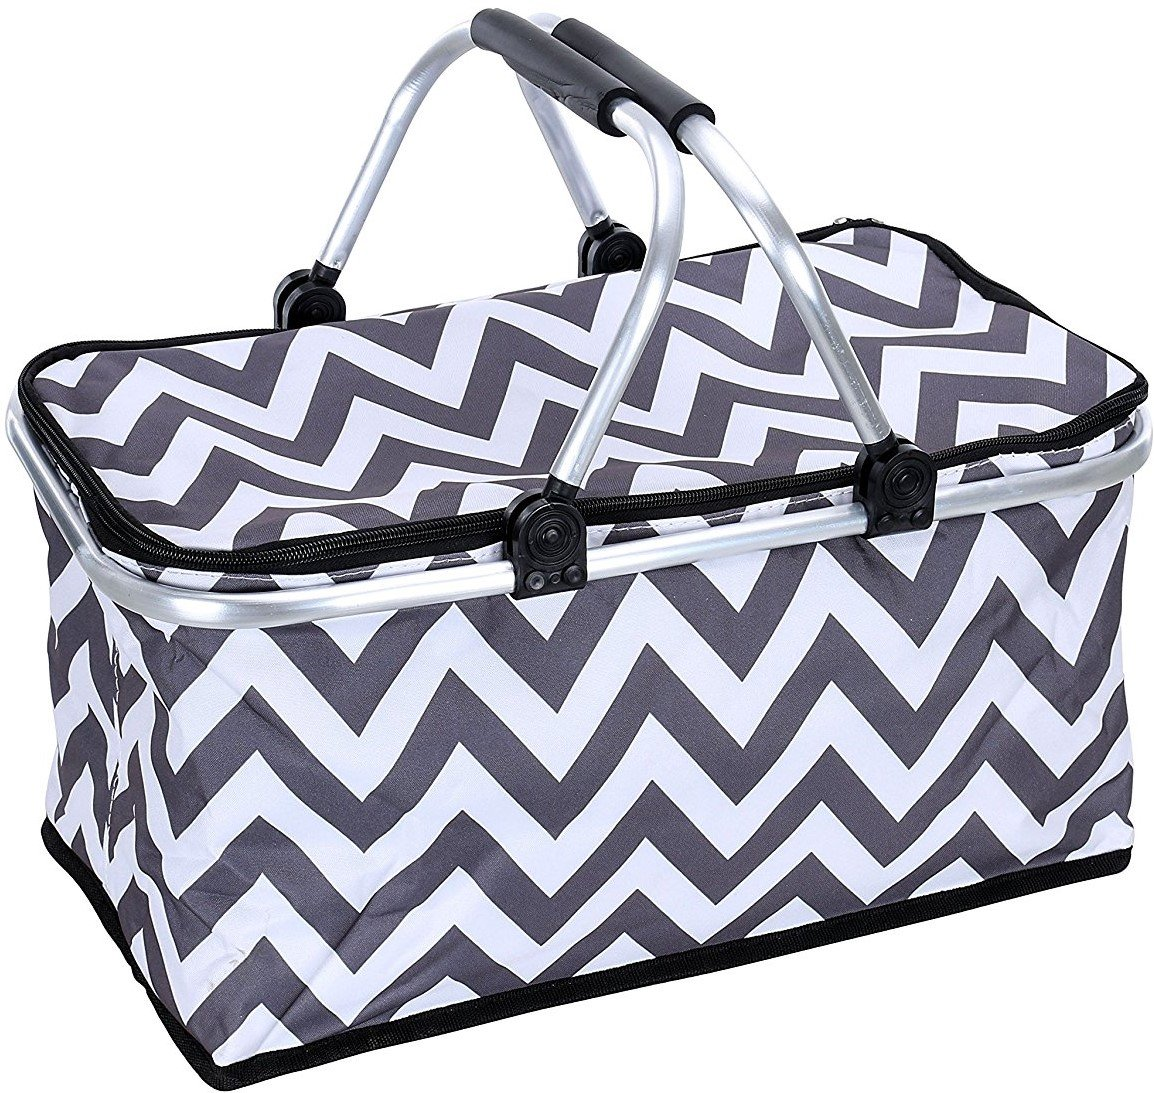 Sprucebay Insulated Picnic Basket - Strong Aluminum Frame - Waterproof Lining - Collapsible Design for Easy Storage - Take it Camping, Picnicking, Lake Trips, or Family Vacations - Keeps Food Cold